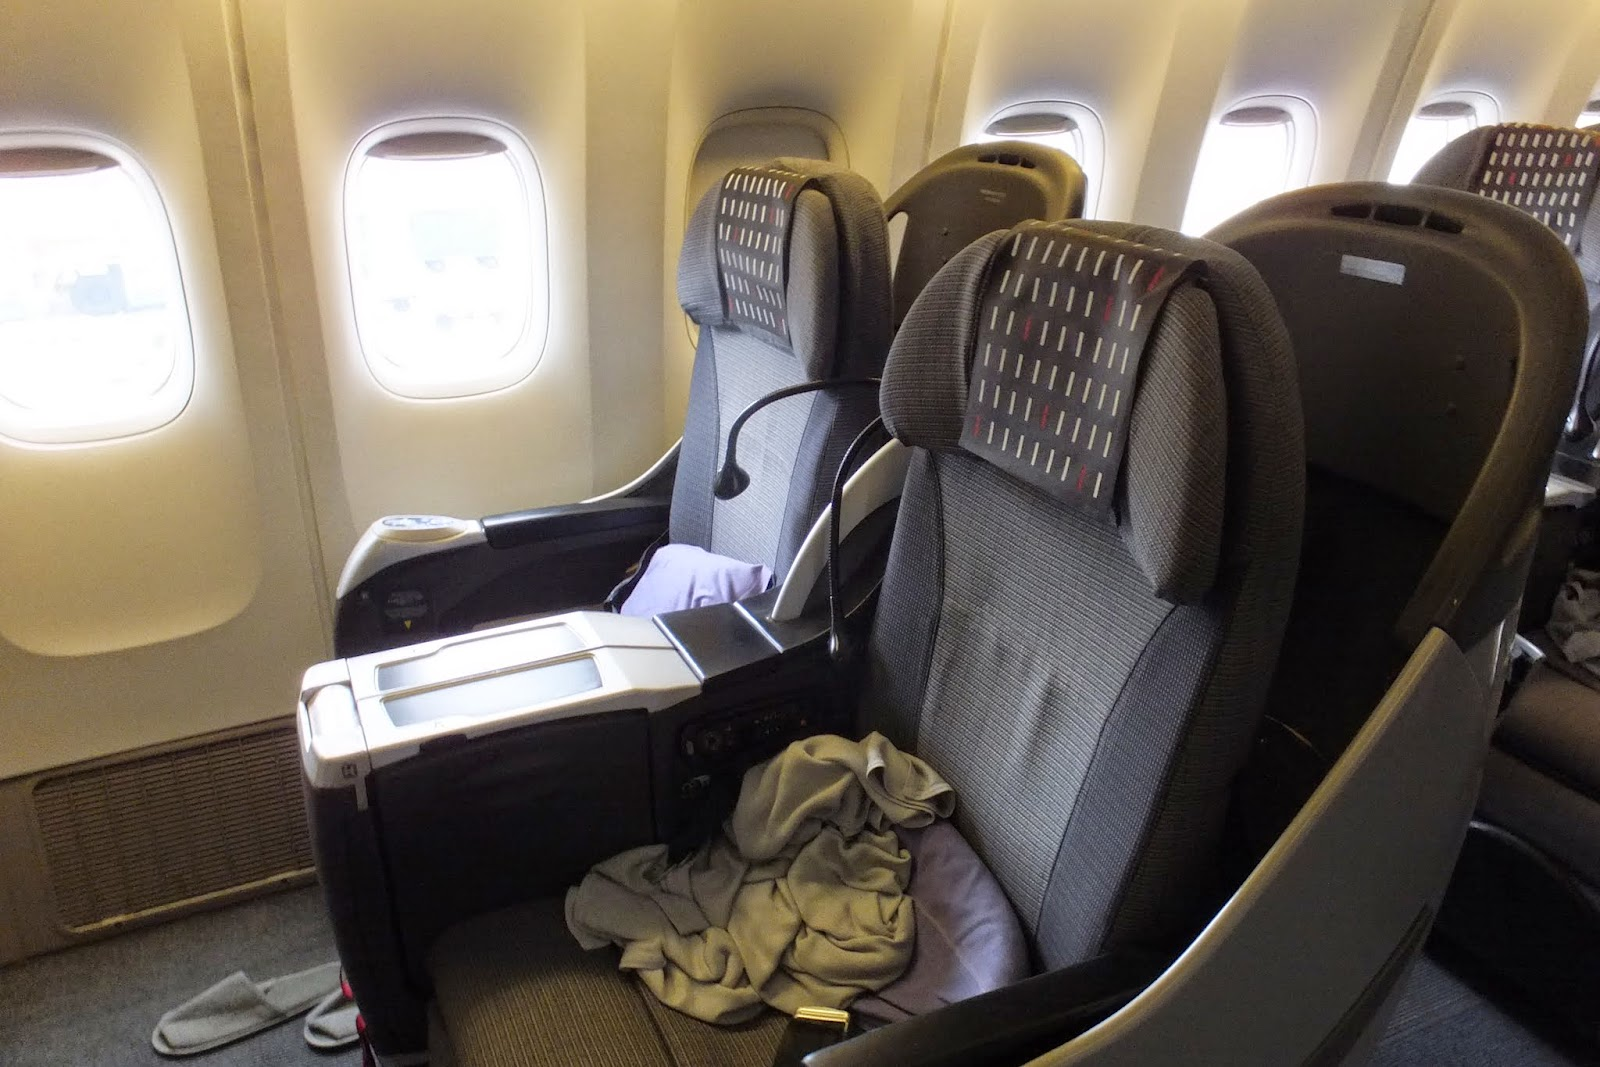 jal-jl097-businessclass2